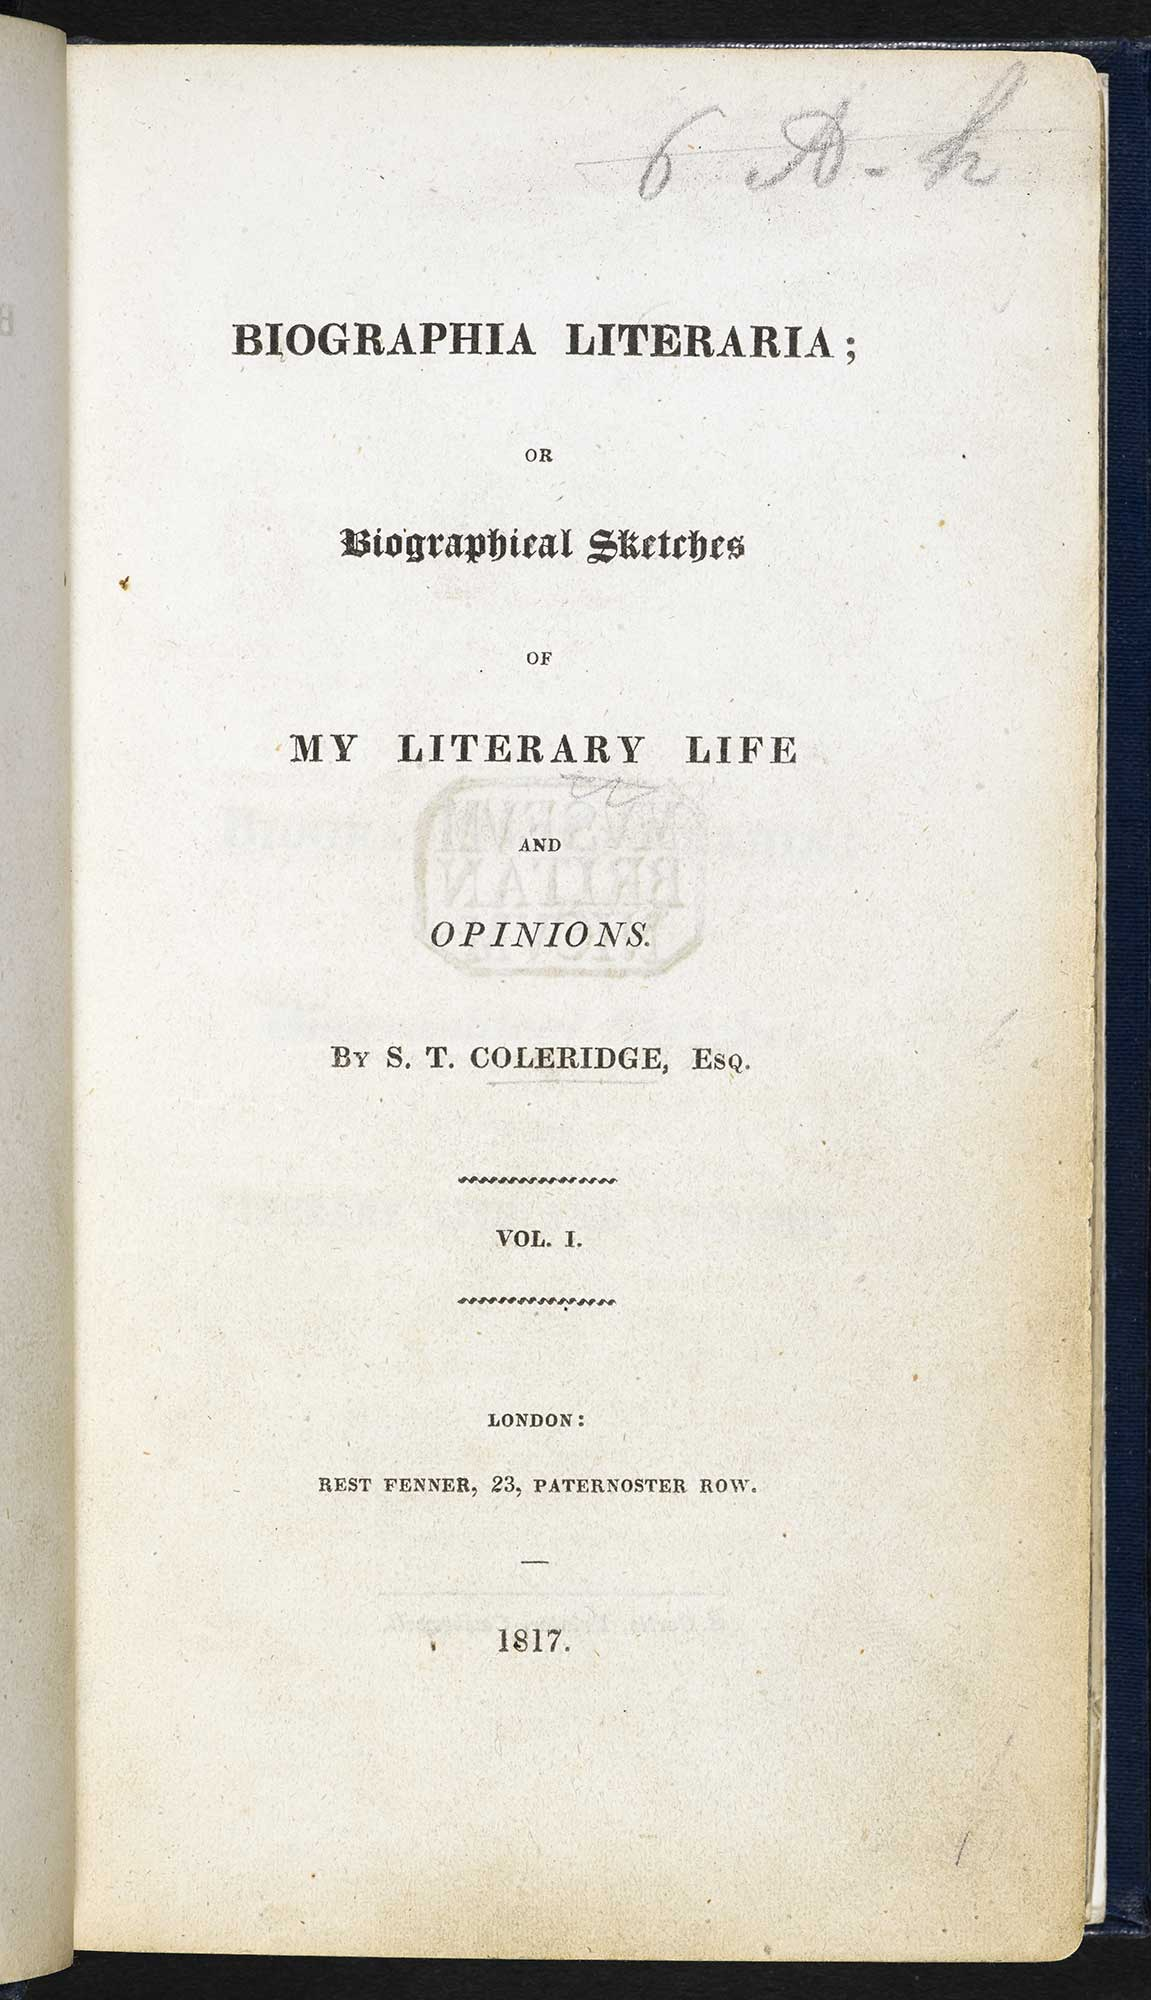 Biographia Literaria by Samuel Taylor Coleridge